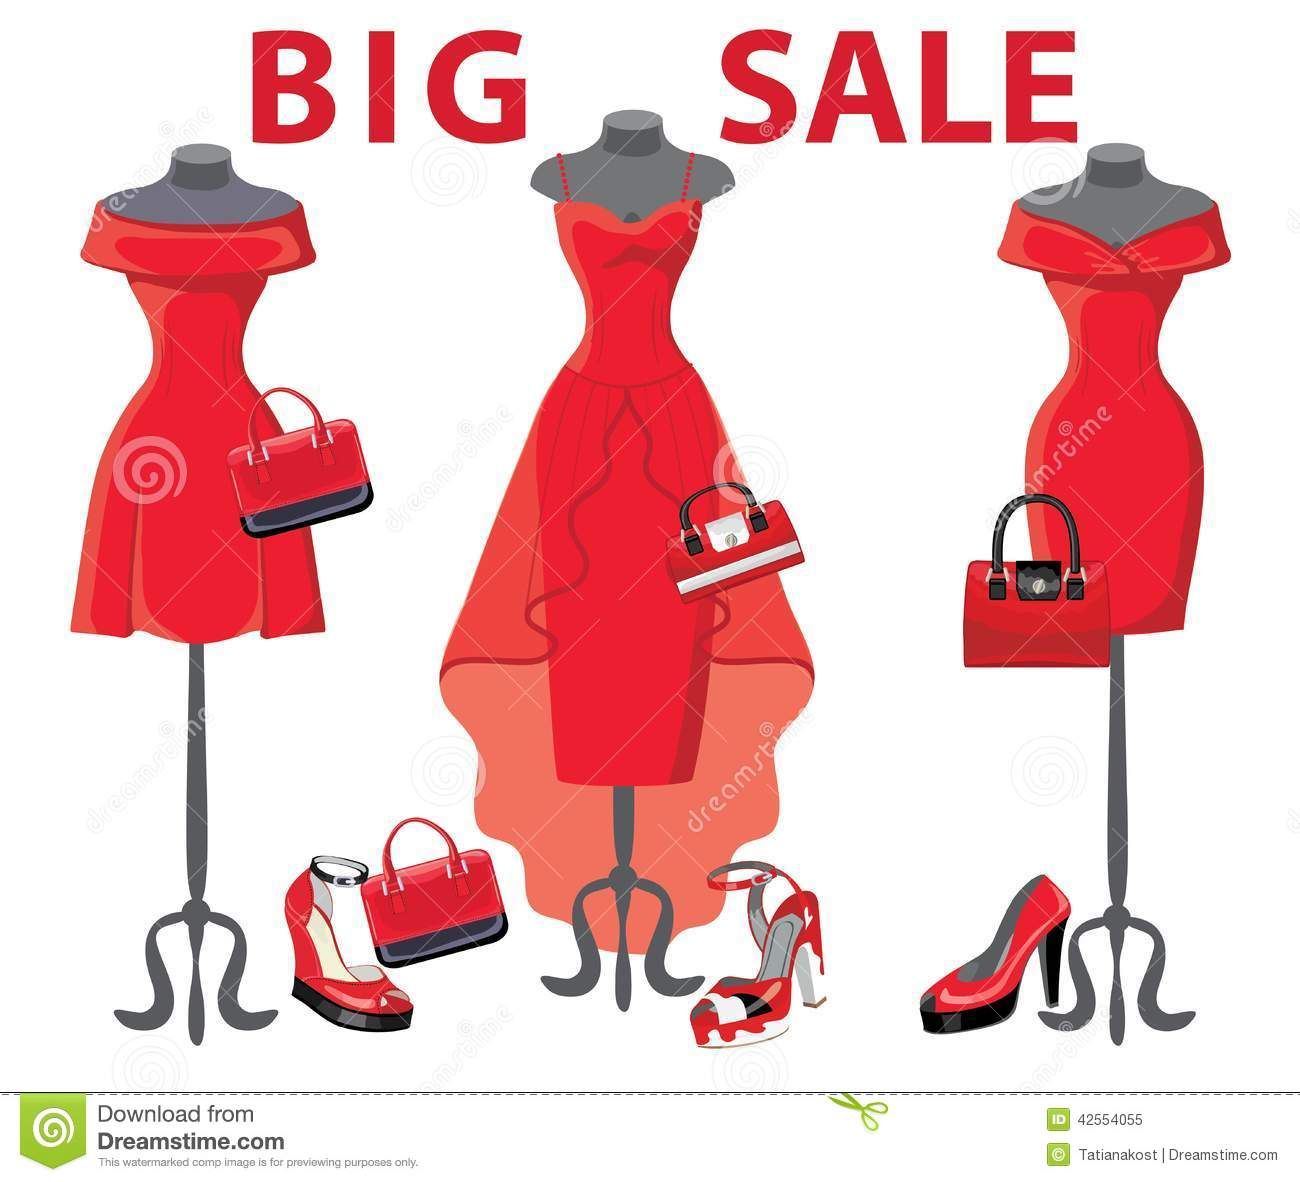 Set Of Three Red Coctail Dresses With Accessories Big Sale Stock Vector Image 42554055